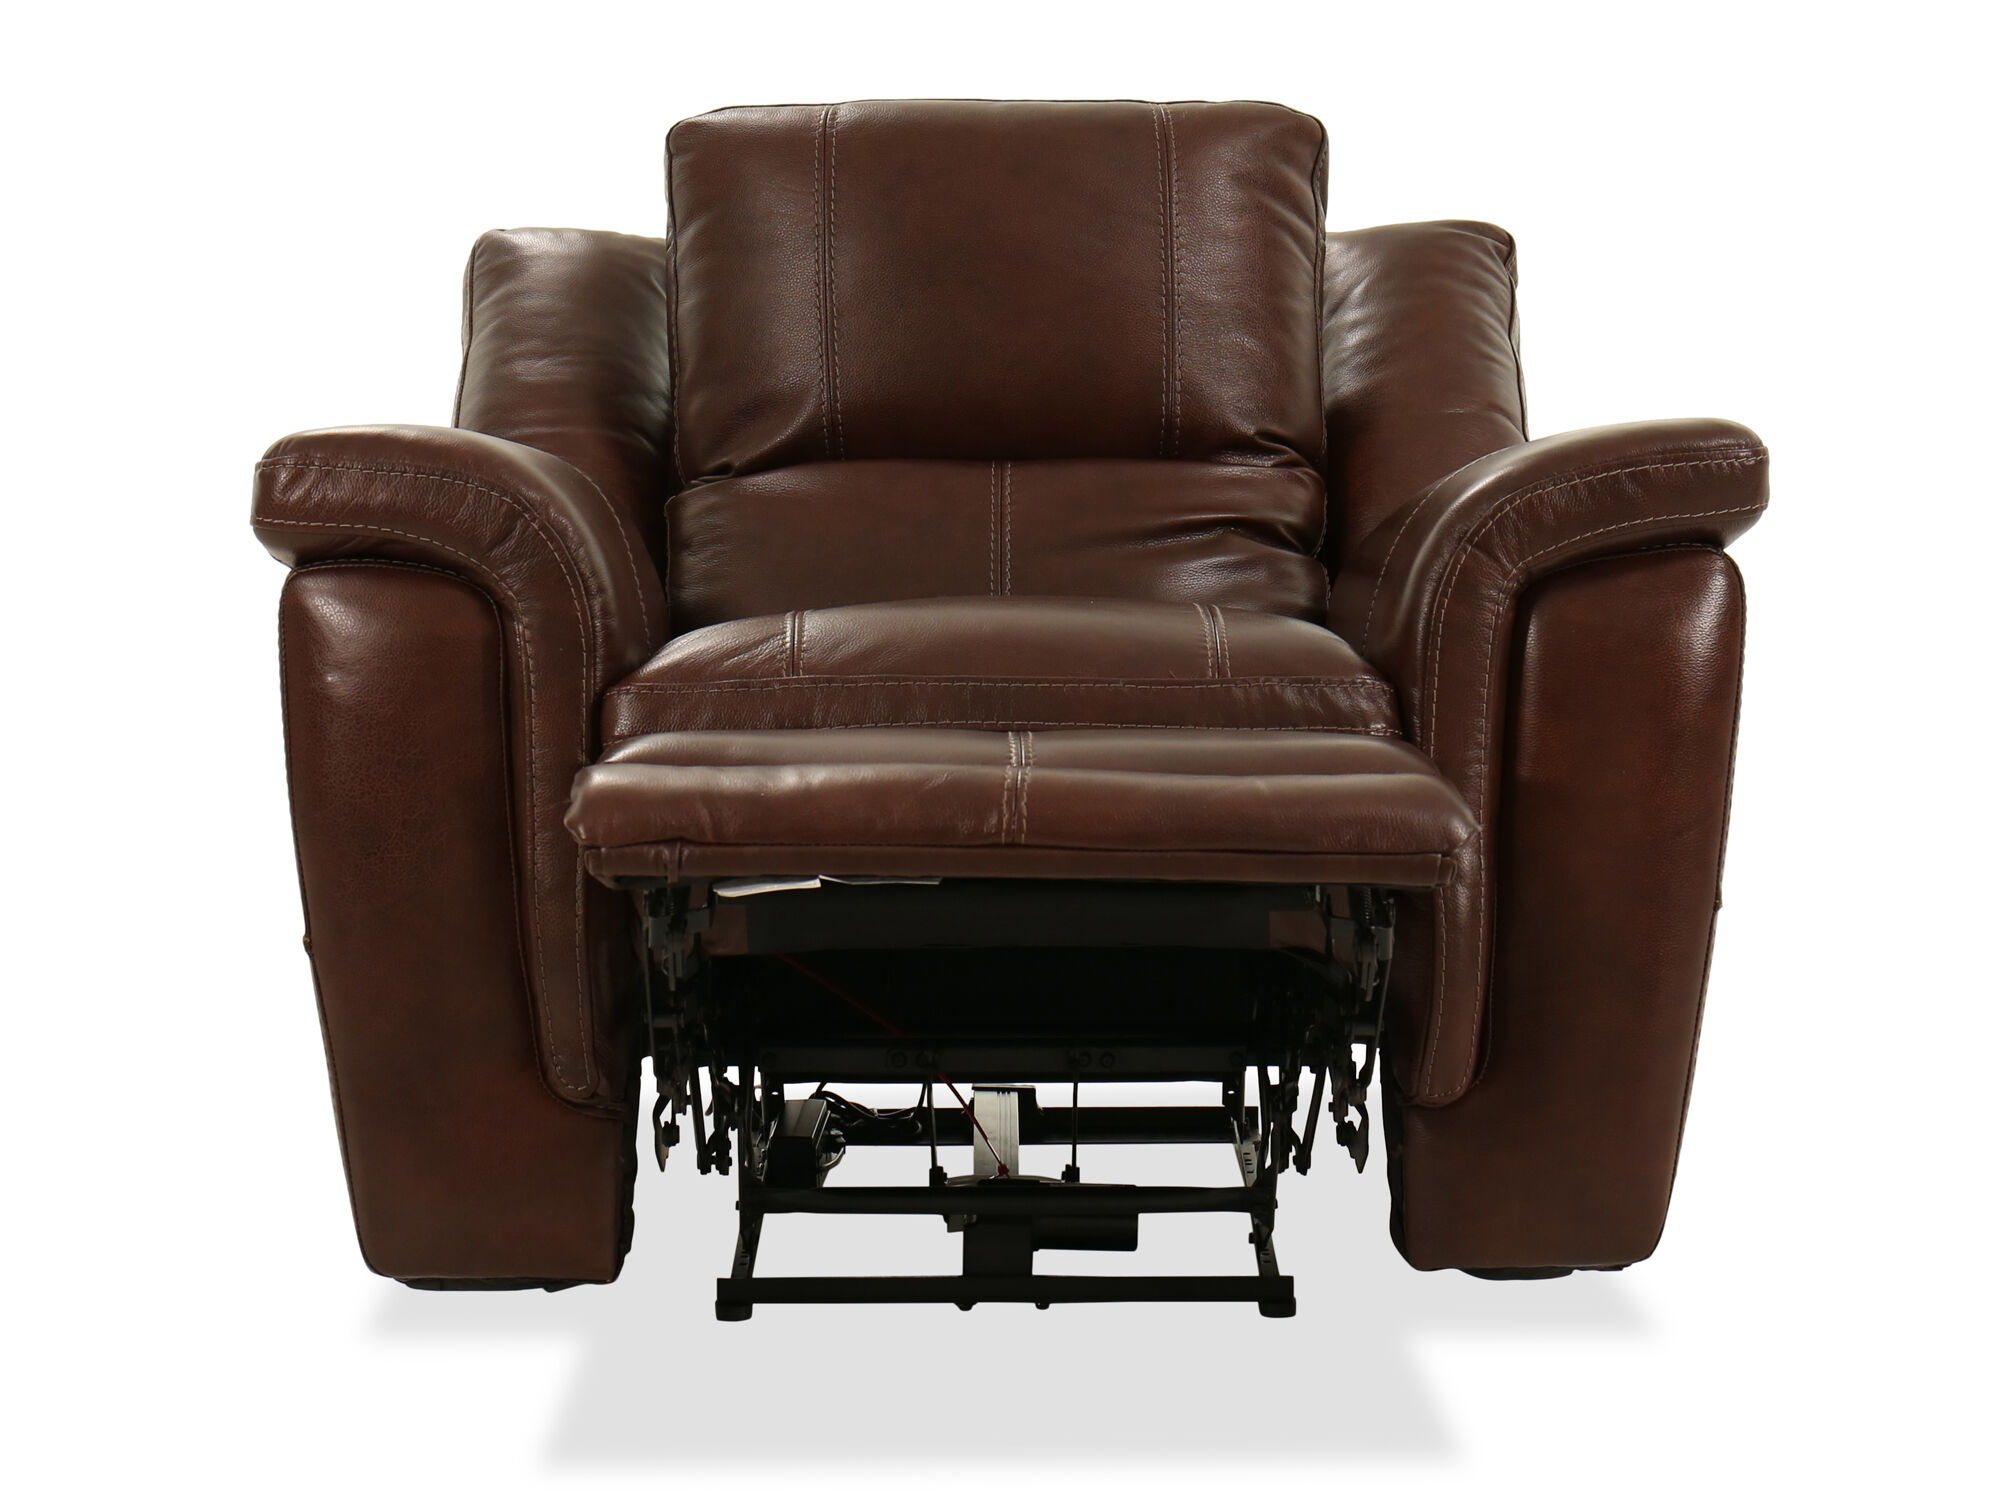 Electric Recliner Leather Chairs Leather Power Recliner In Brown Mathis Brothers Furniture